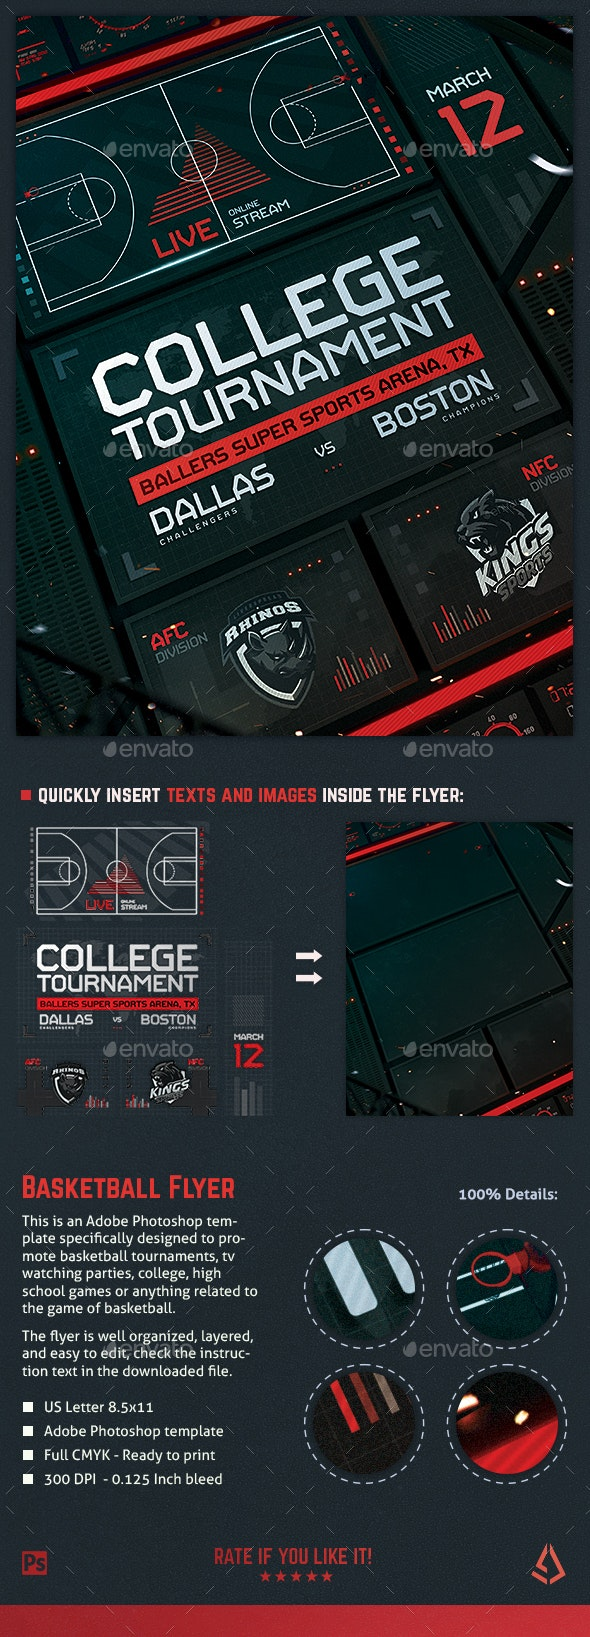 Basketball Flyer College Hoops Madness Template - Sports Events